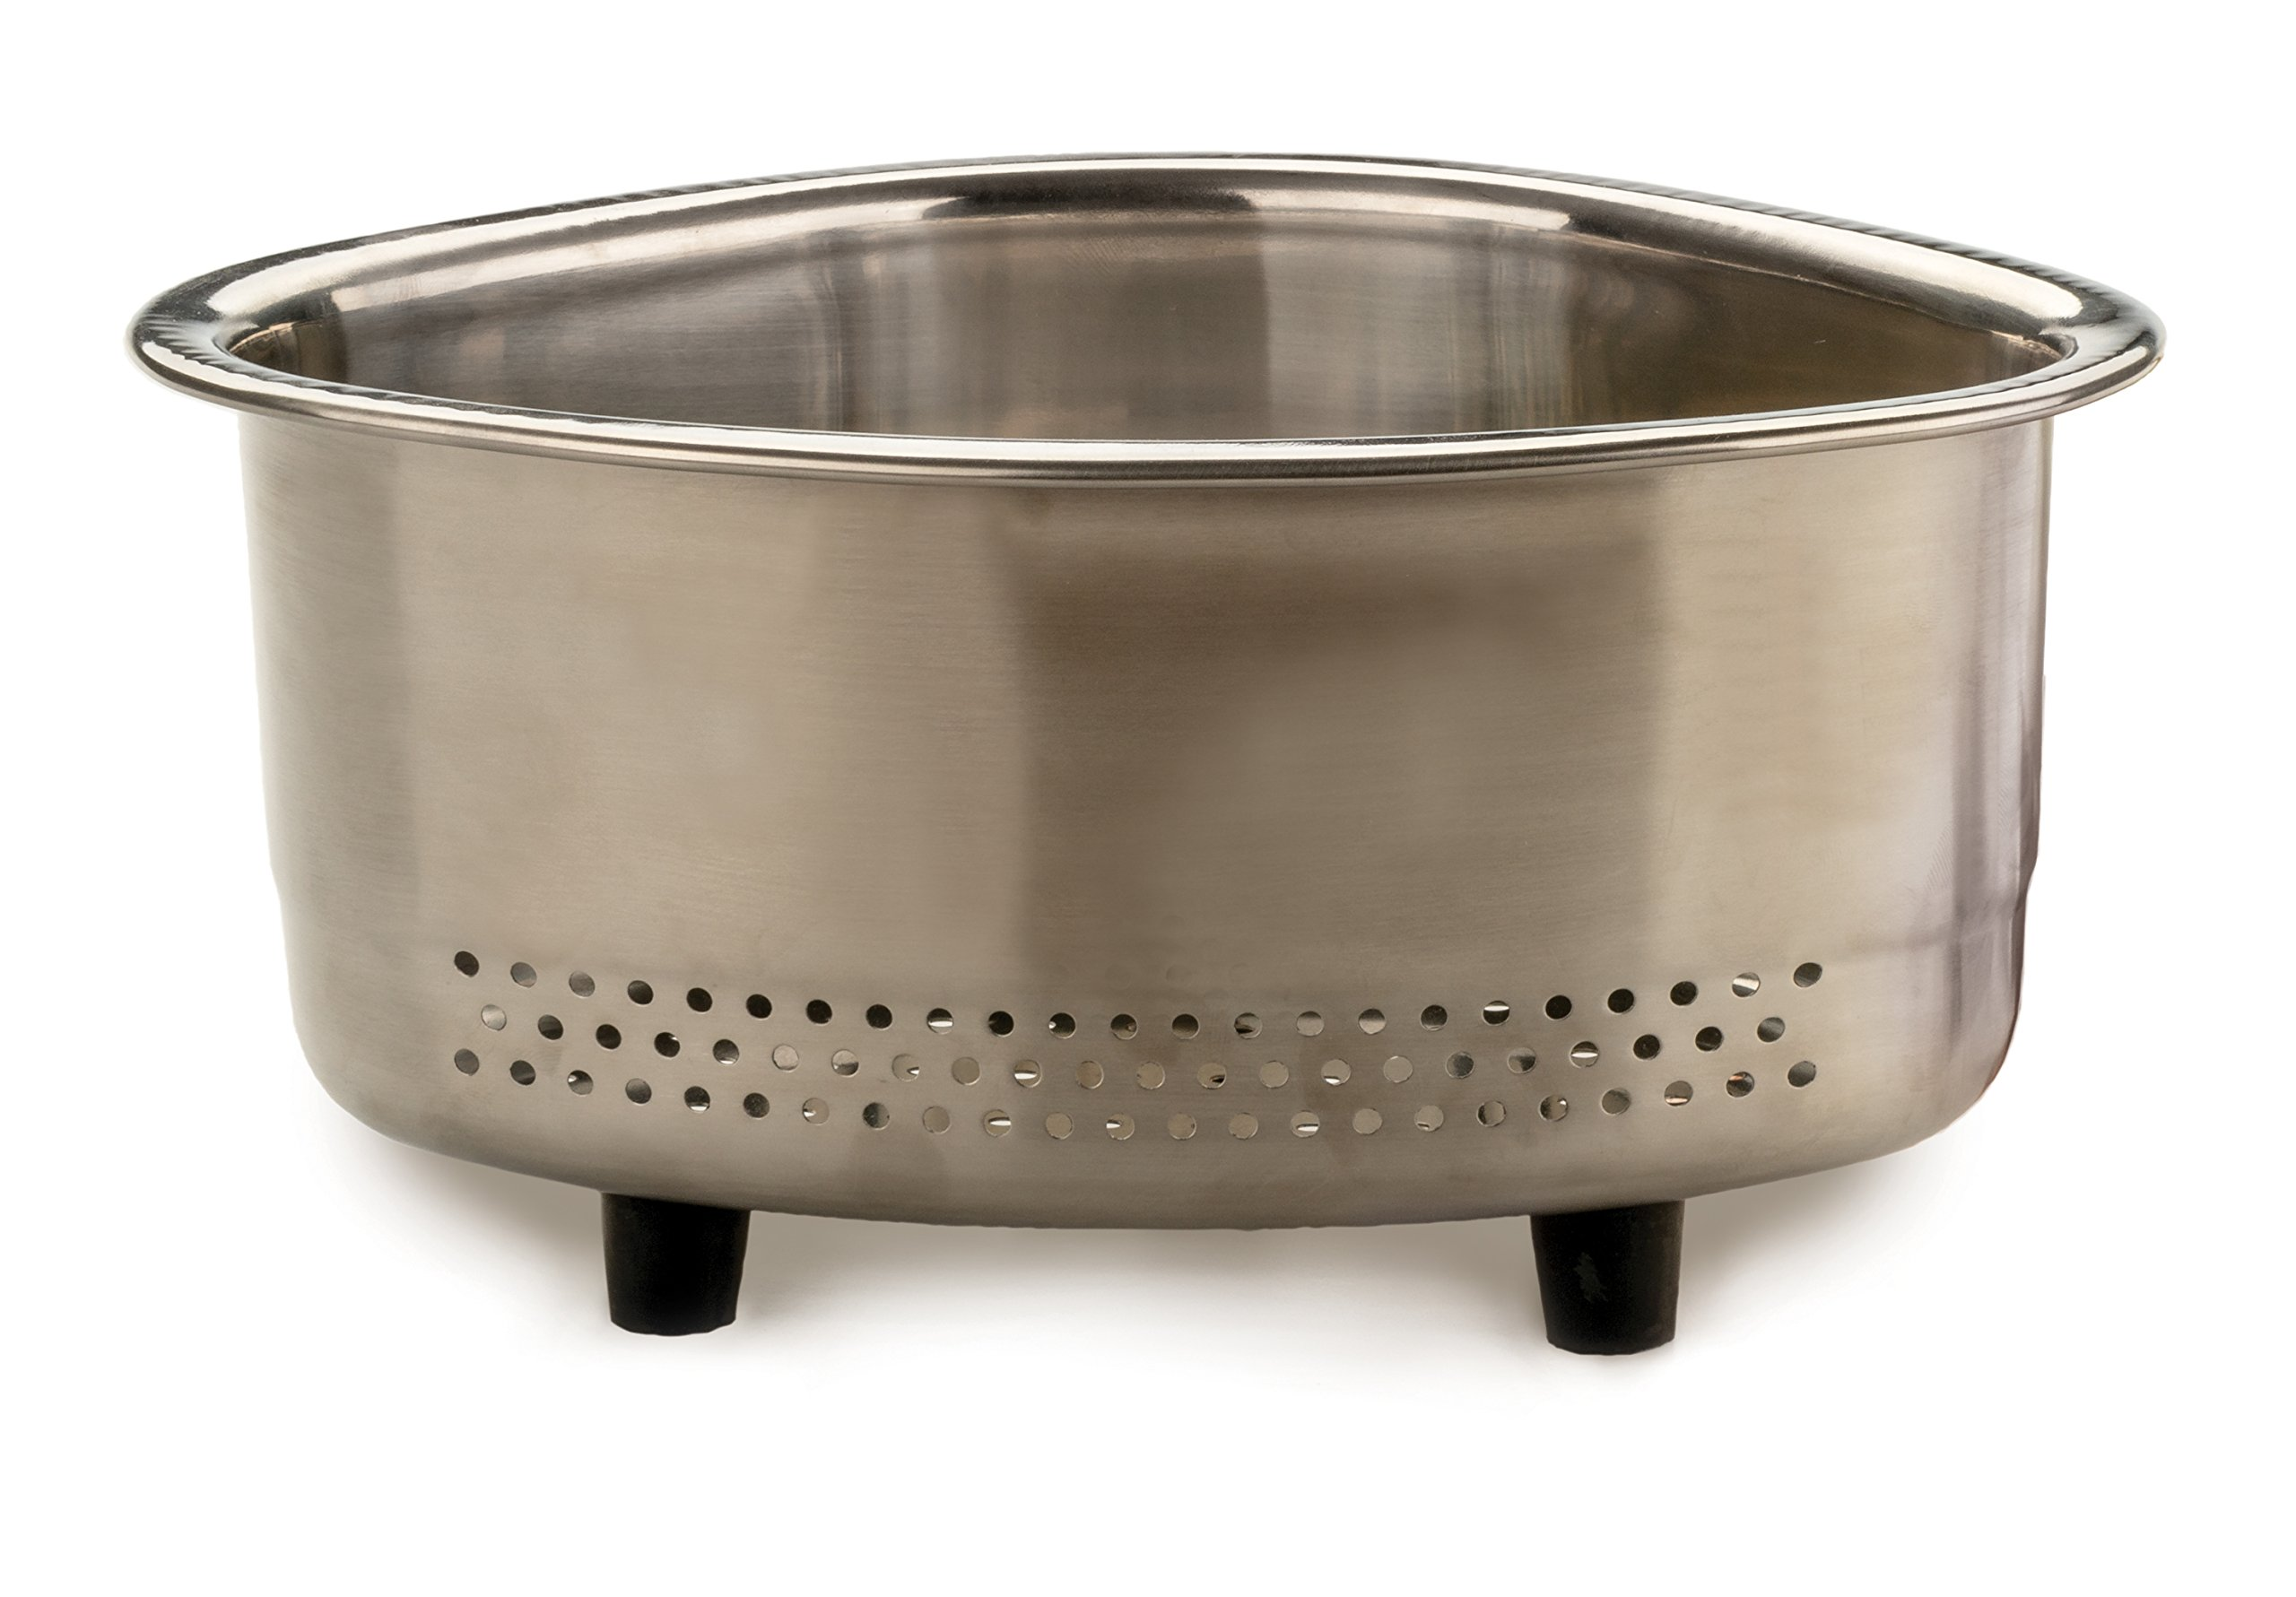 RSVP Endurance Stainless Steel In-Sink Corner Basket by RSVP International